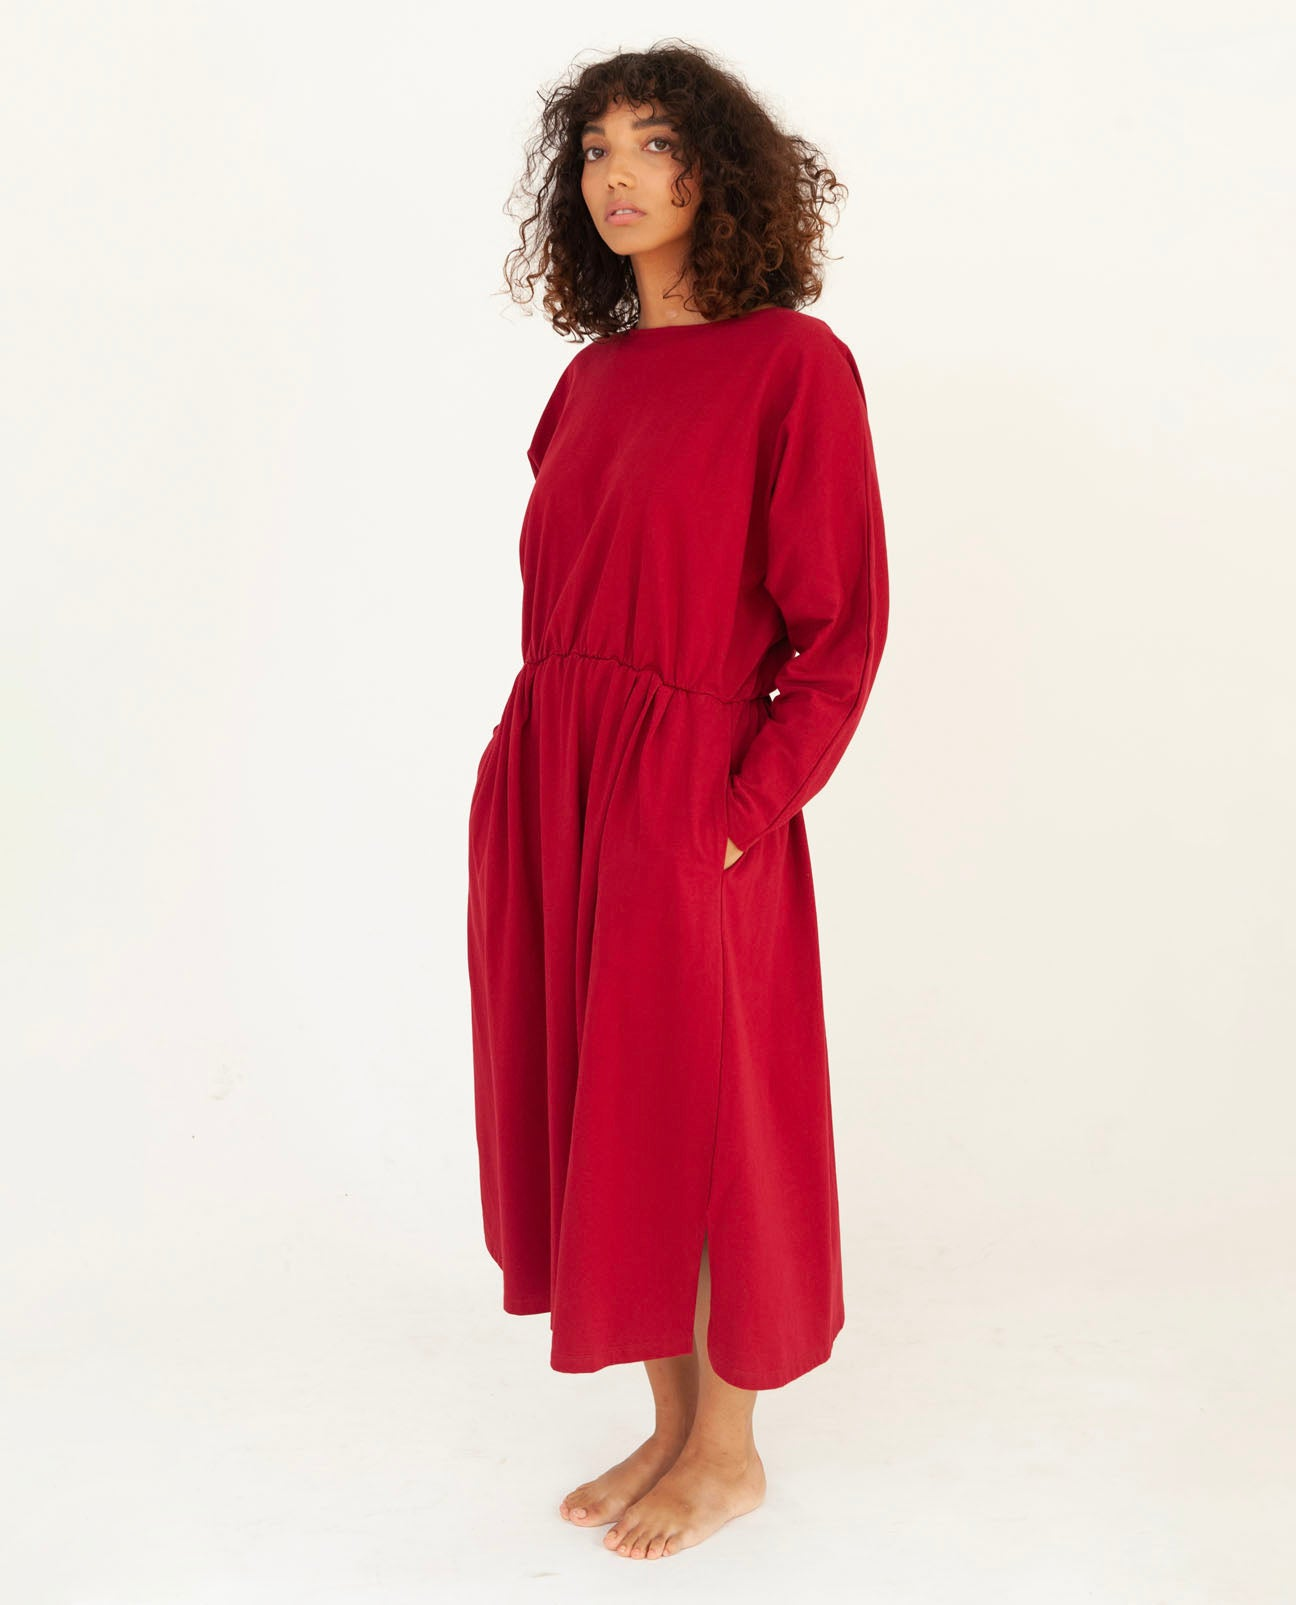 TALITA Organic Cotton Dress In Cherry